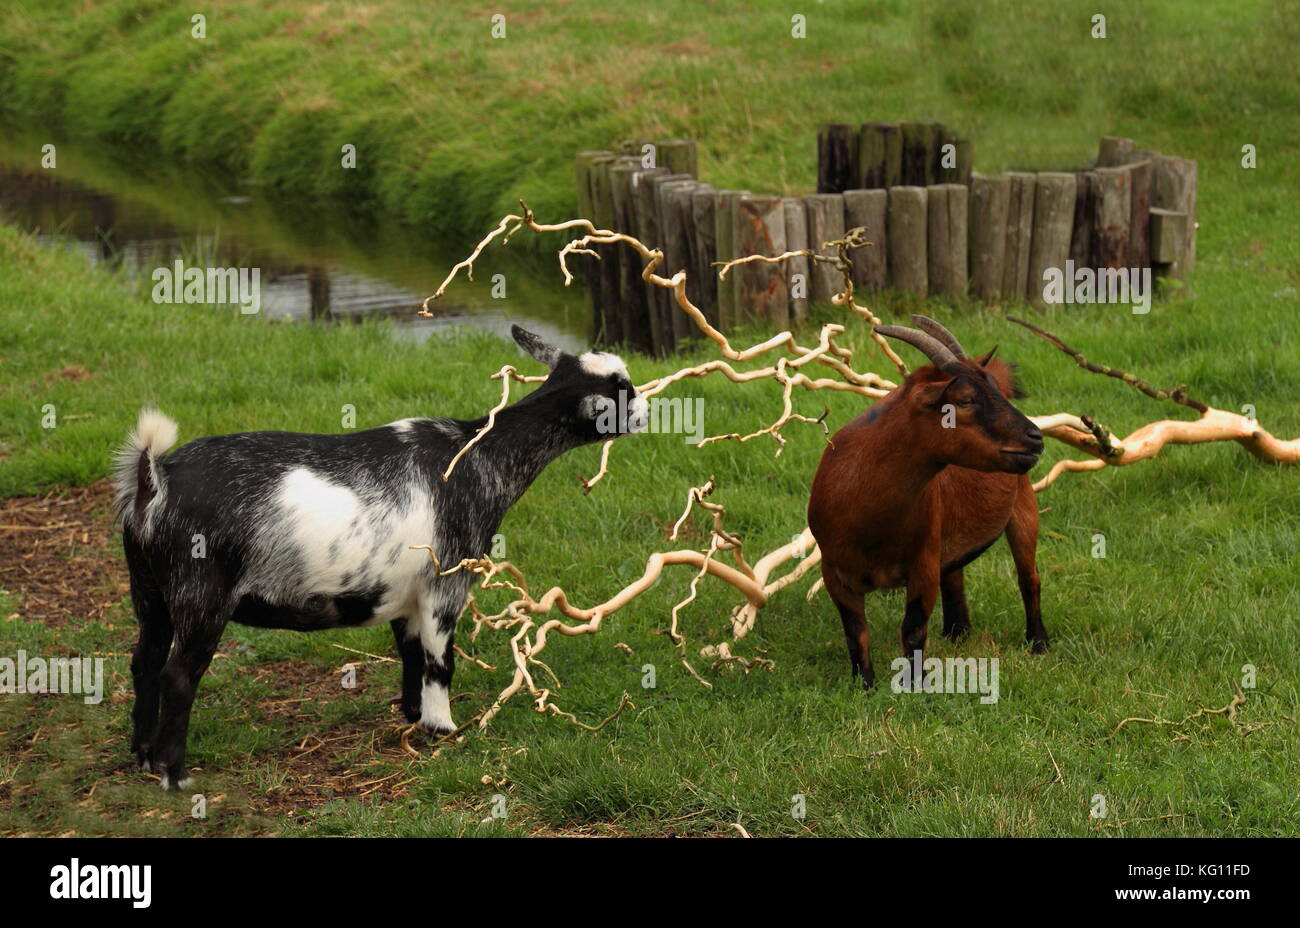 Farm scene in landscape format - two goats graze in a paddock with green grass and a stream - Stock Image